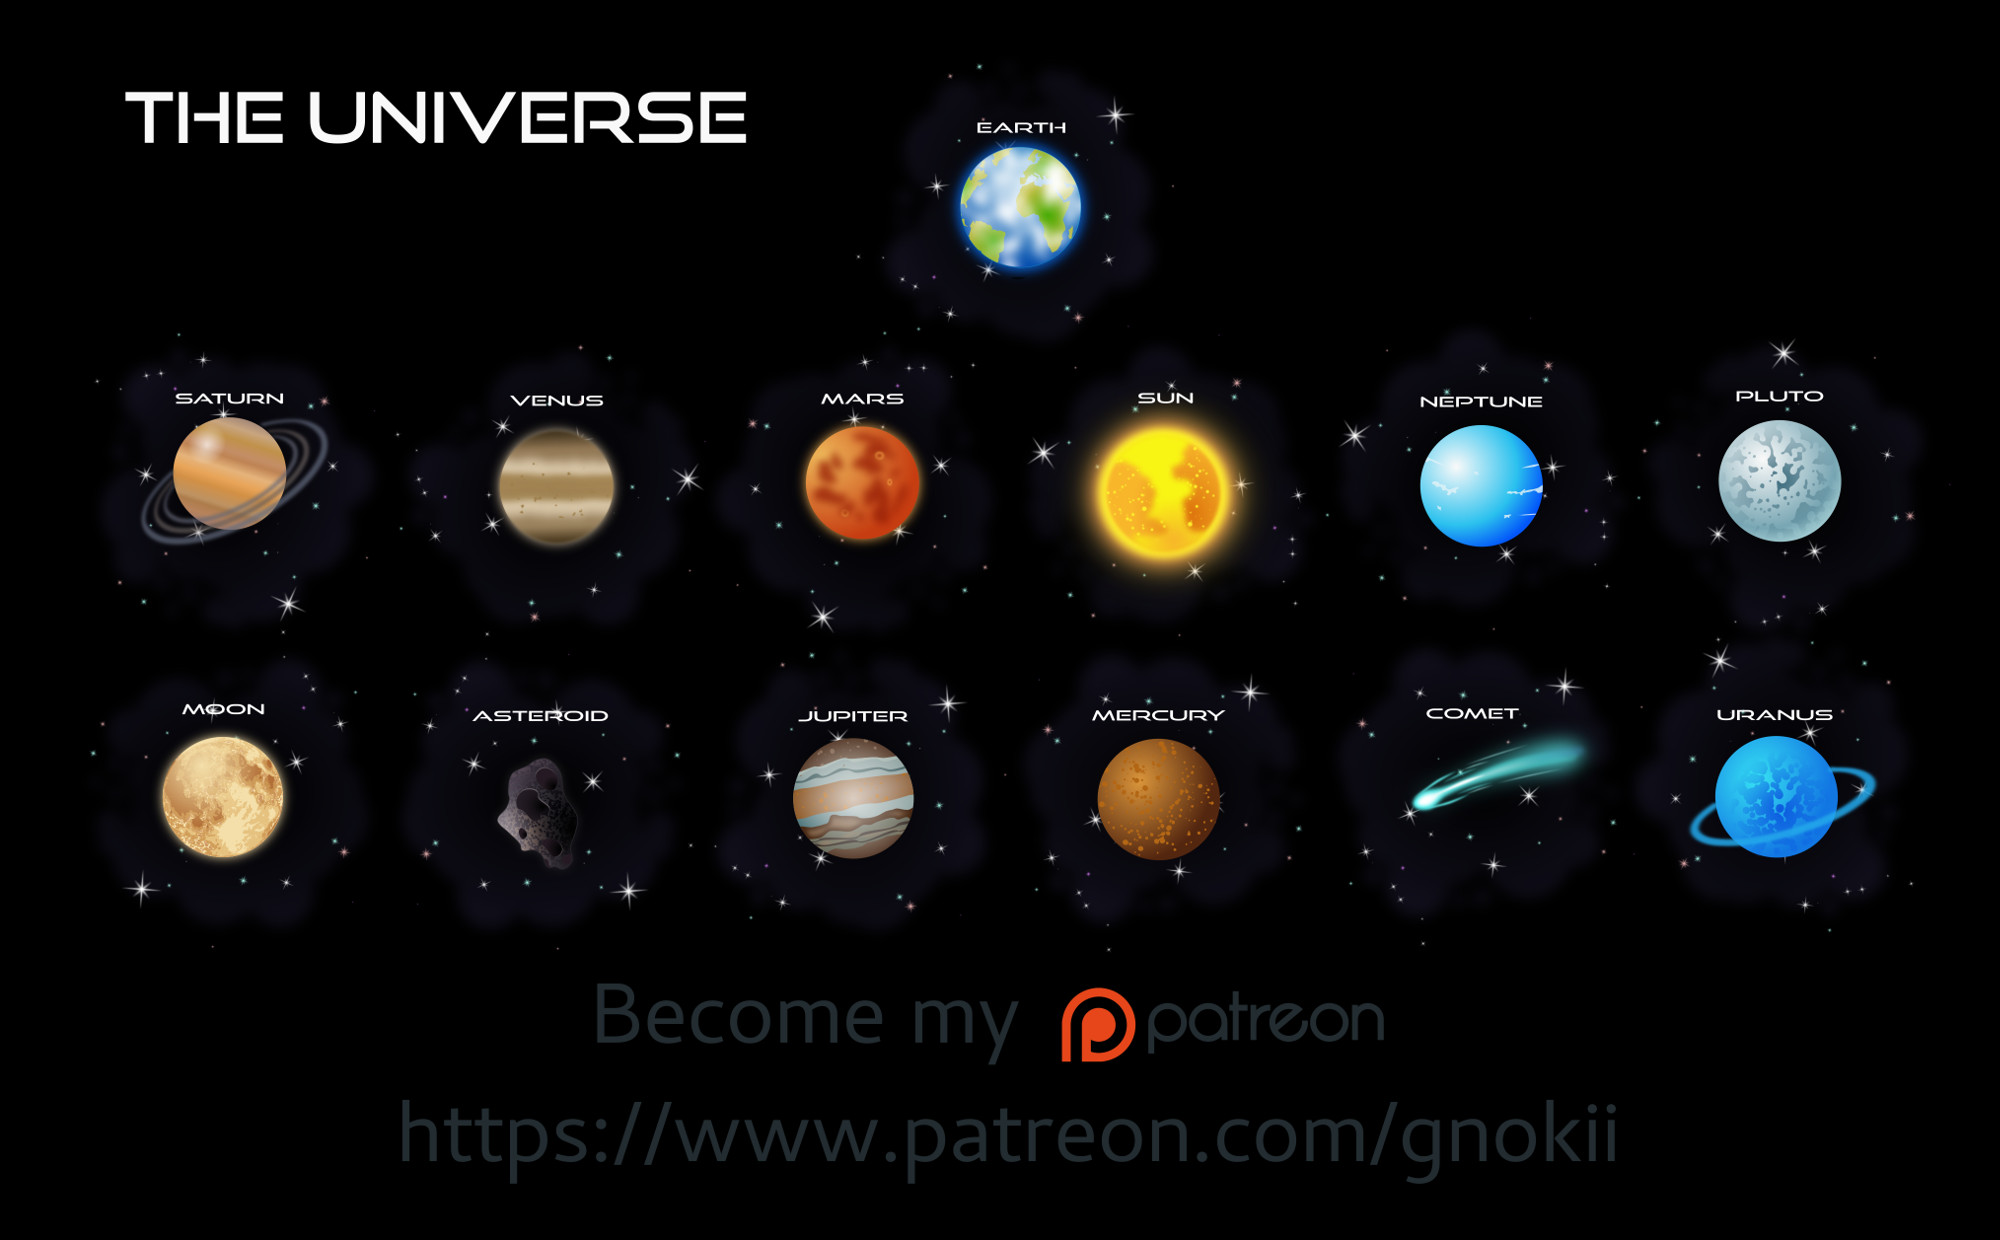 Universe by gnokii on DeviantArt